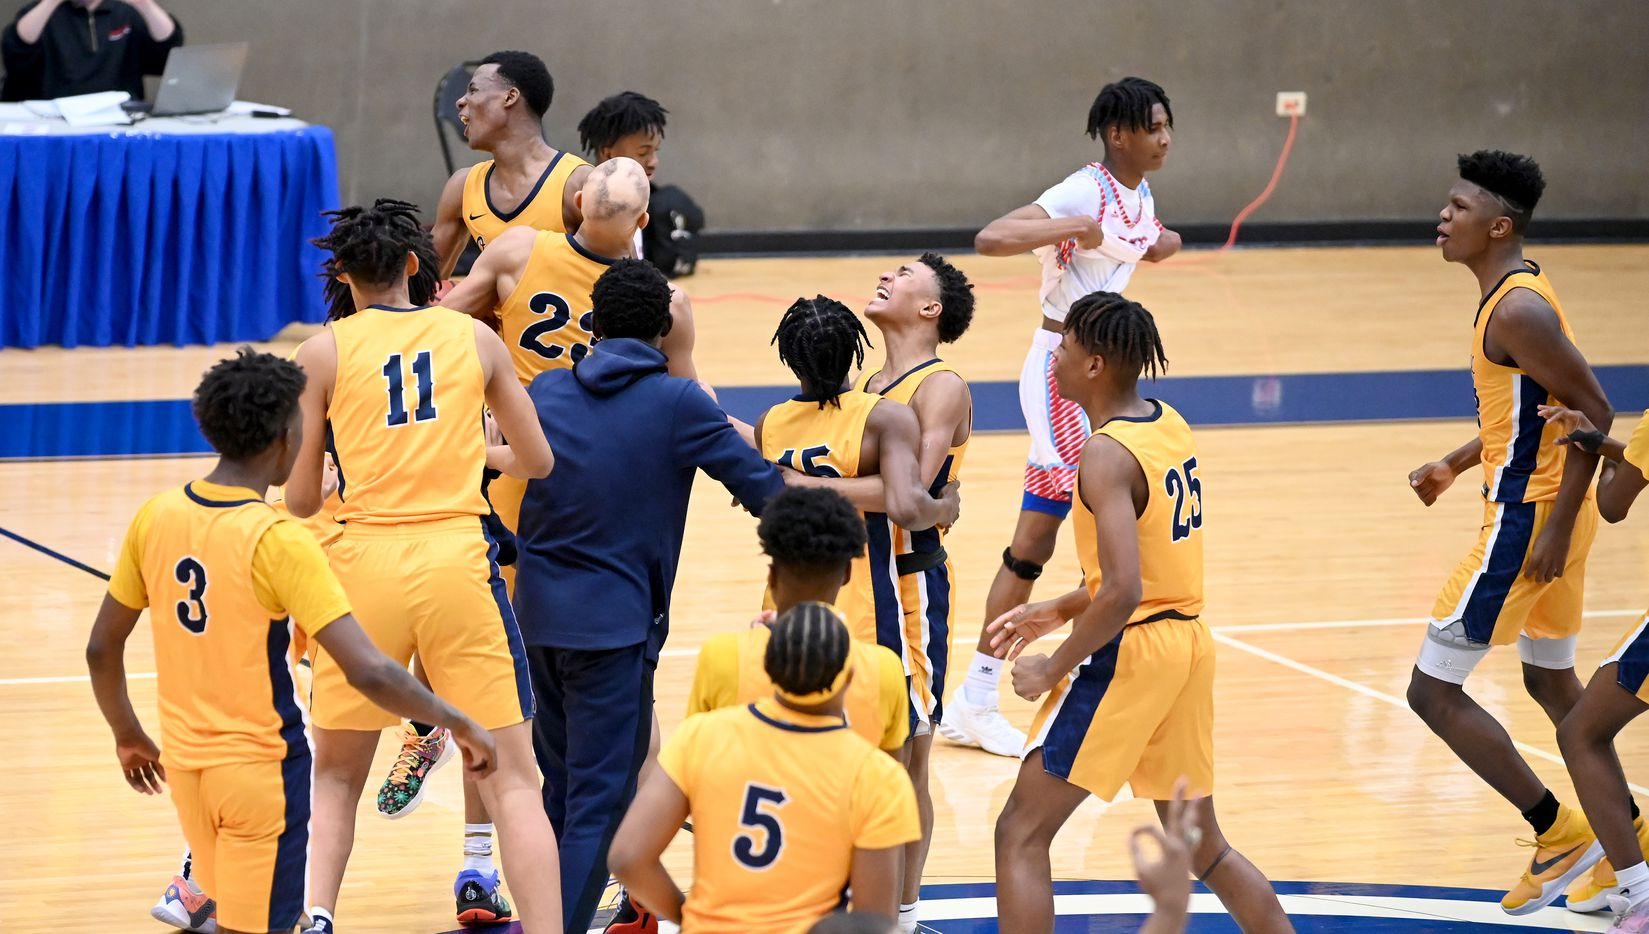 Faith Family team members celebrate their win of a Class 4A Region II final boys playoff basketball game between Dallas Carter and Oak Cliff Faith Family, Friday, March 5, 2021, in Grand Prairie, Texas. (Matt Strasen/Special Contributor)